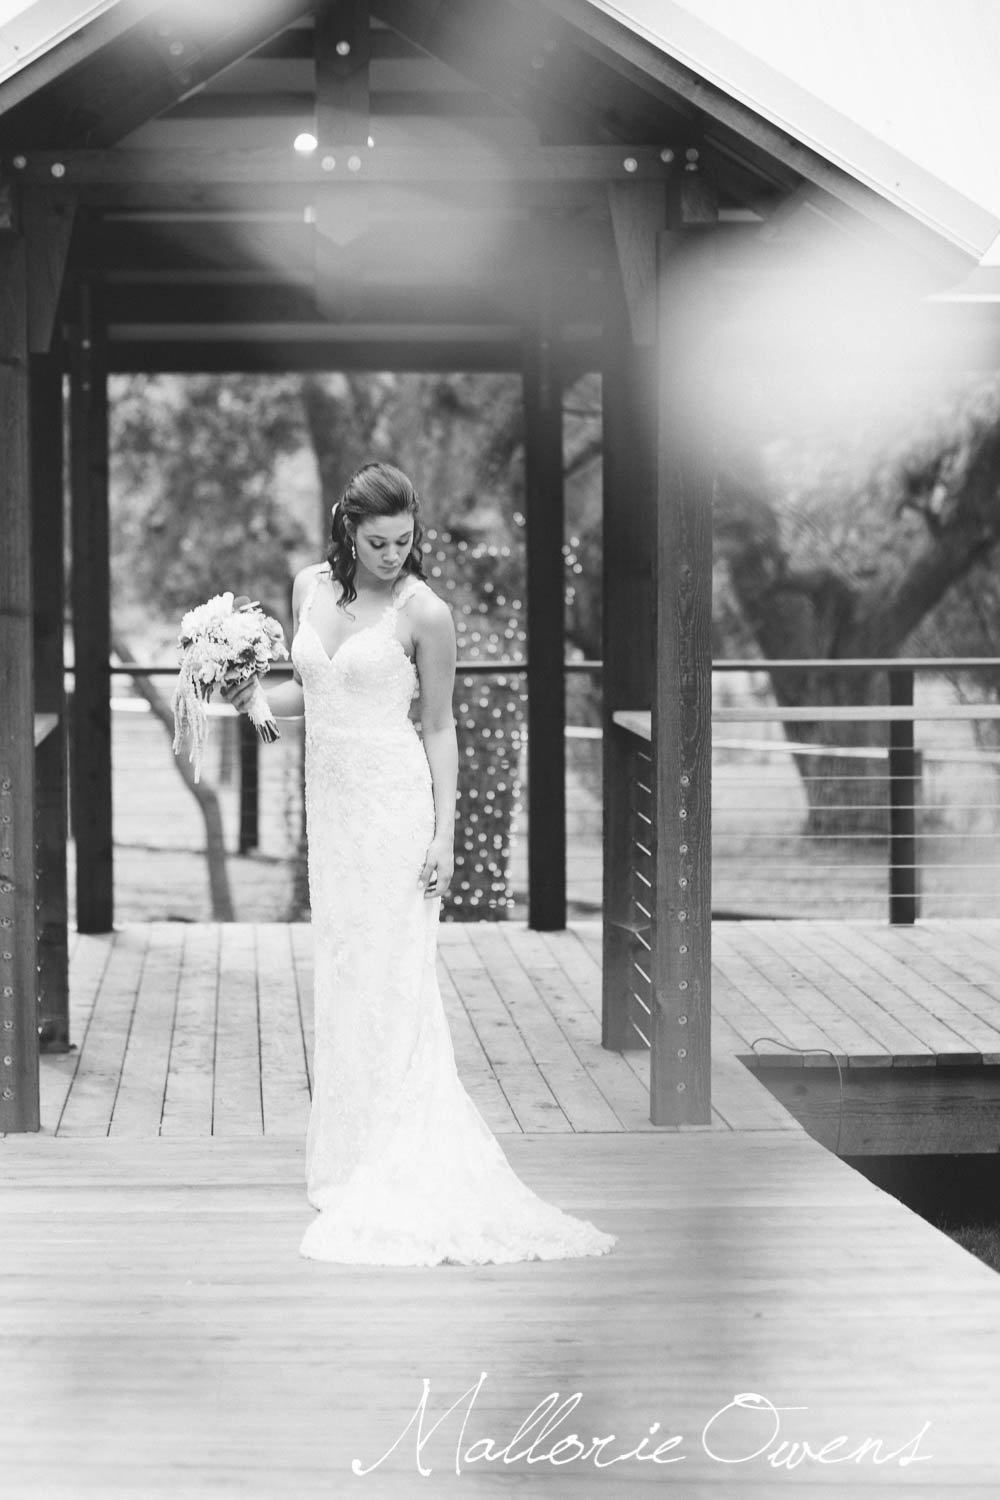 Austin Wedding Photography | MALLORIE OWENS